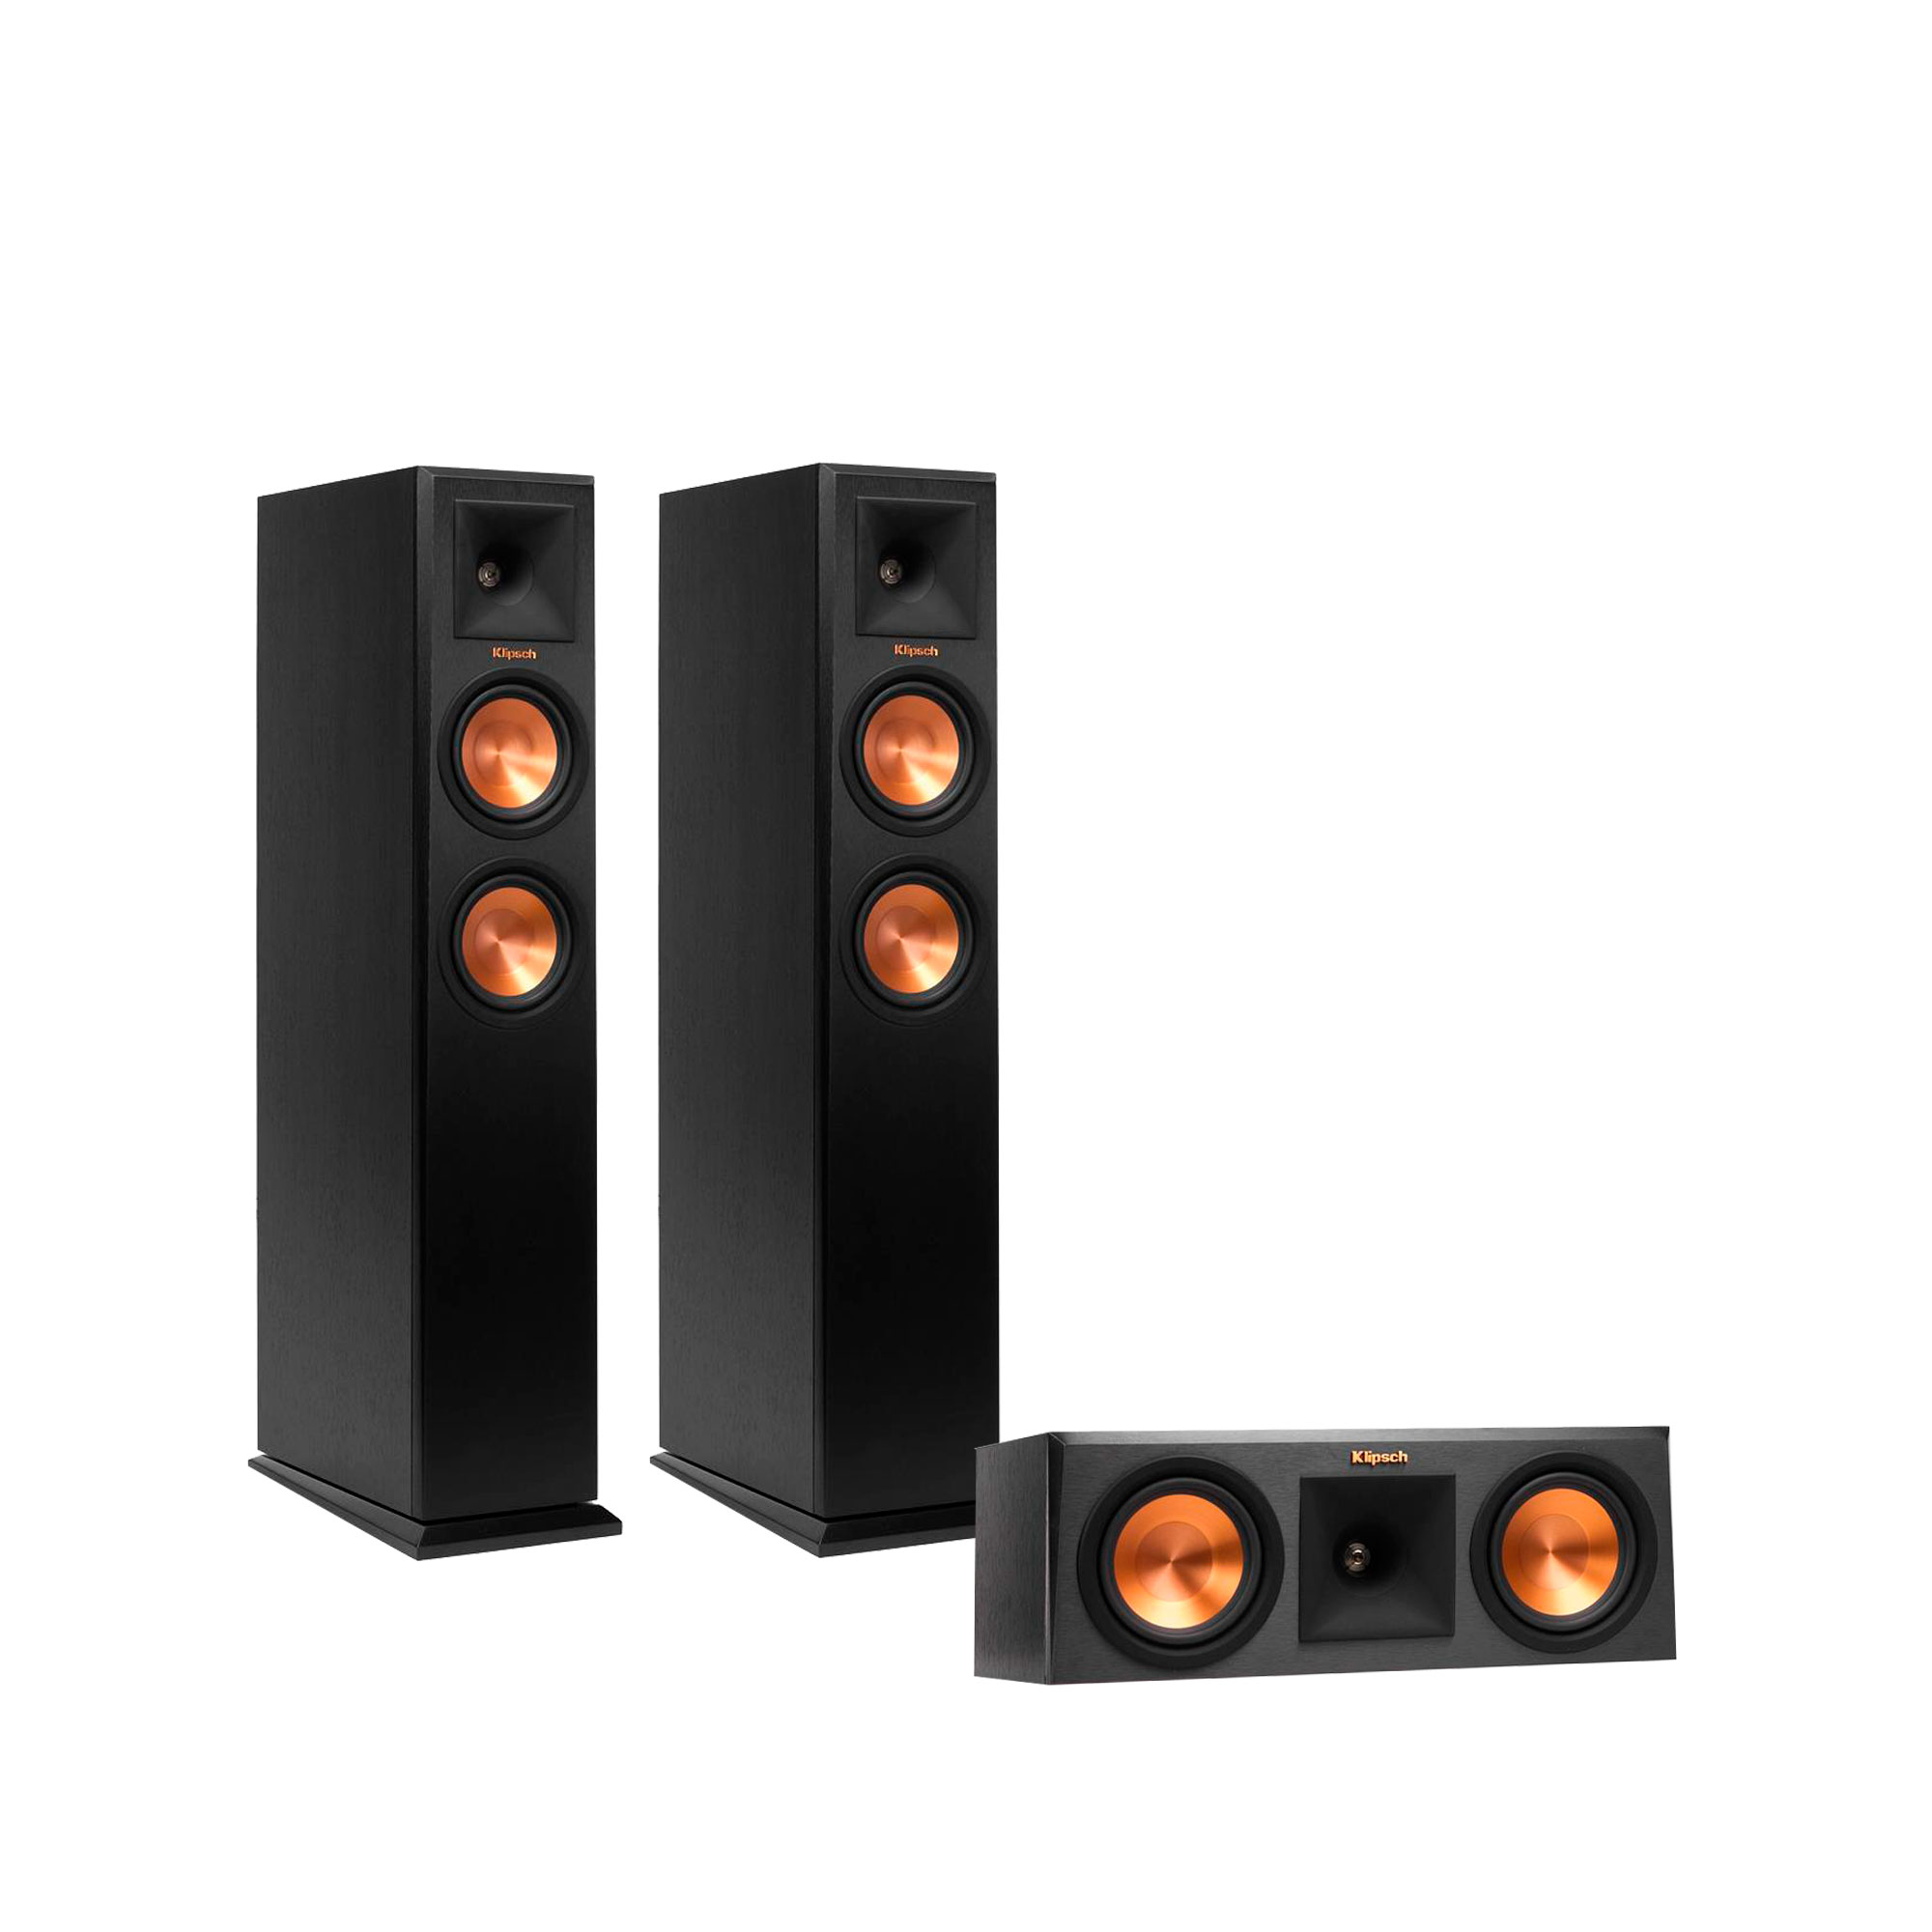 Klipsch RP-250F Reference Premiere Floorstanding Speaker Package with RP-250C Center Channel Speaker by Klipsch